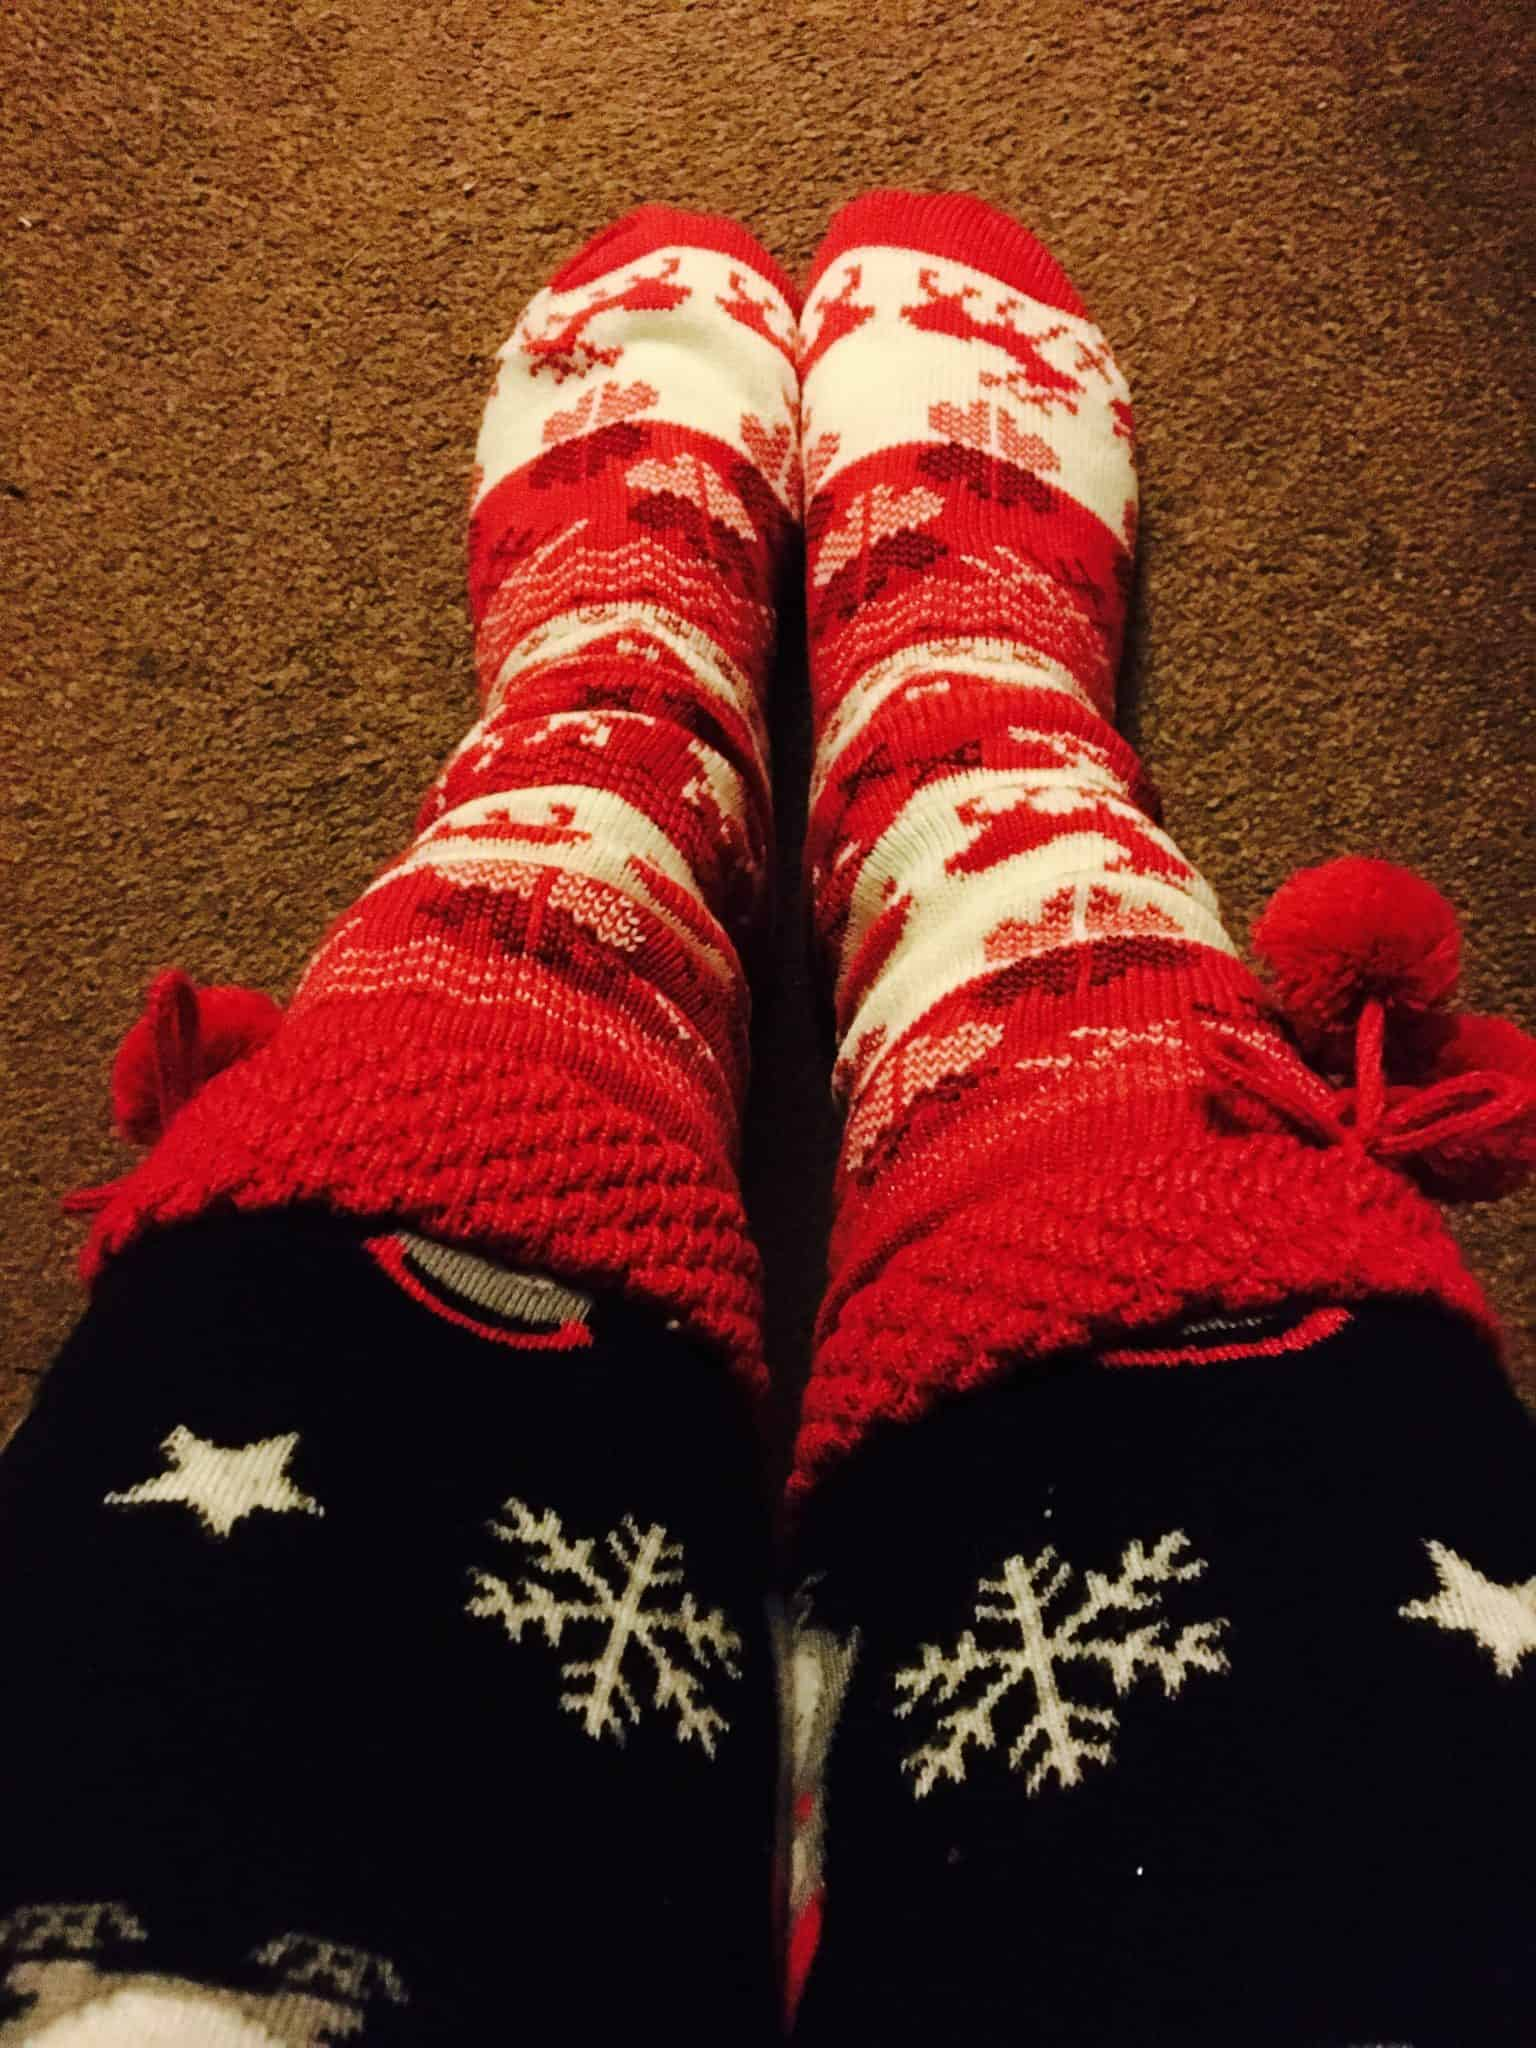 Dressing up warm to help costs of energy bills